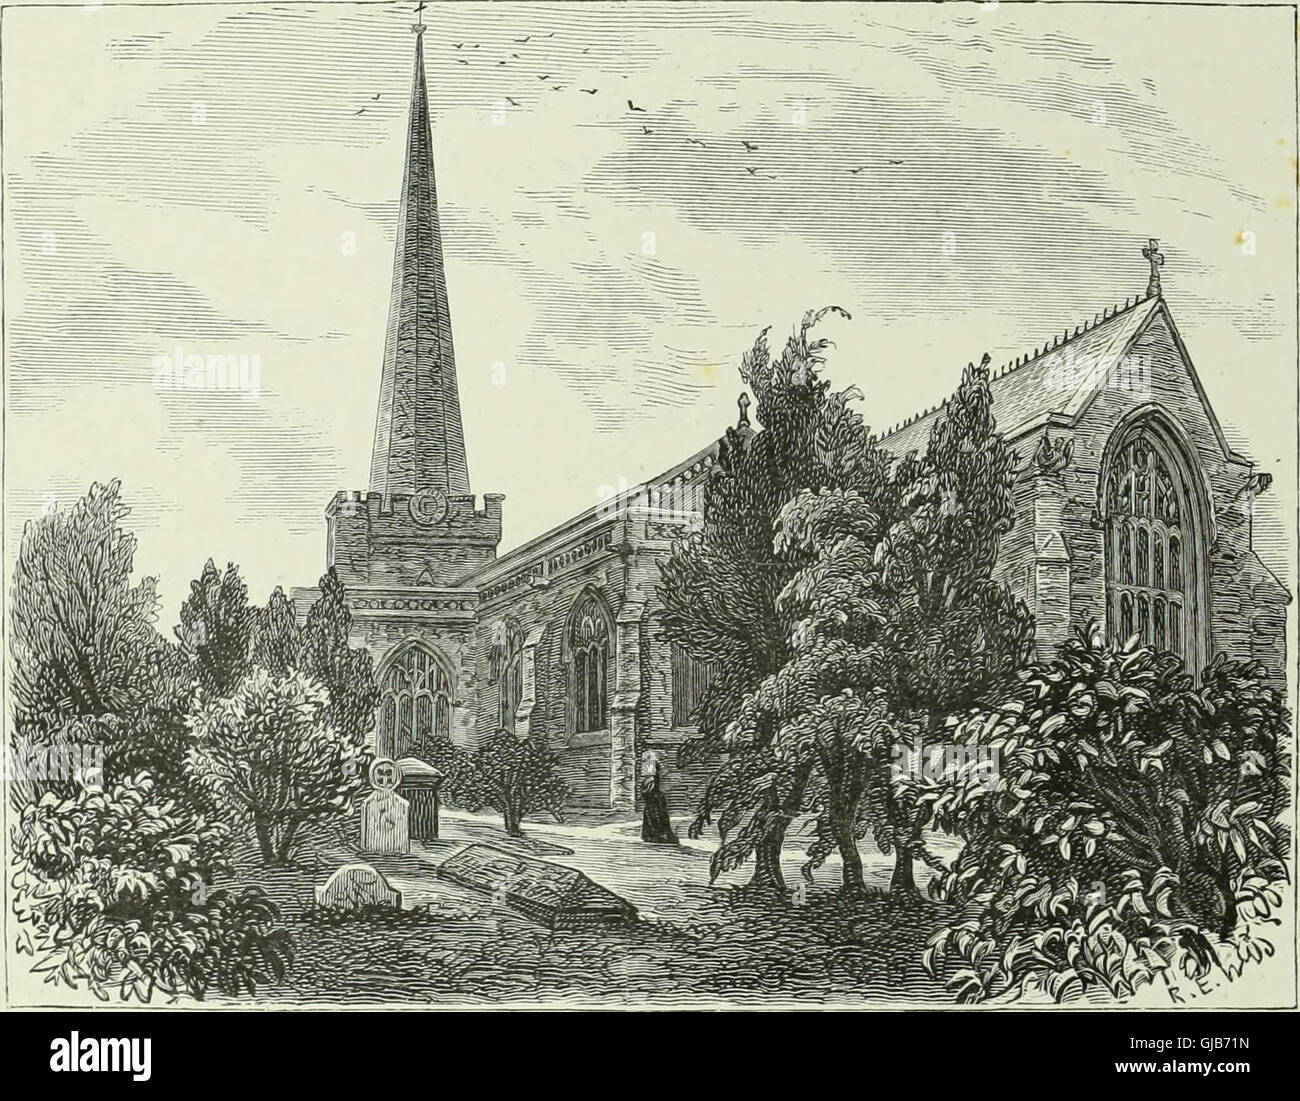 Cathedrals, abbeys and churches of England and Wales - descriptive, historical, pictorial (1890) Stock Photo